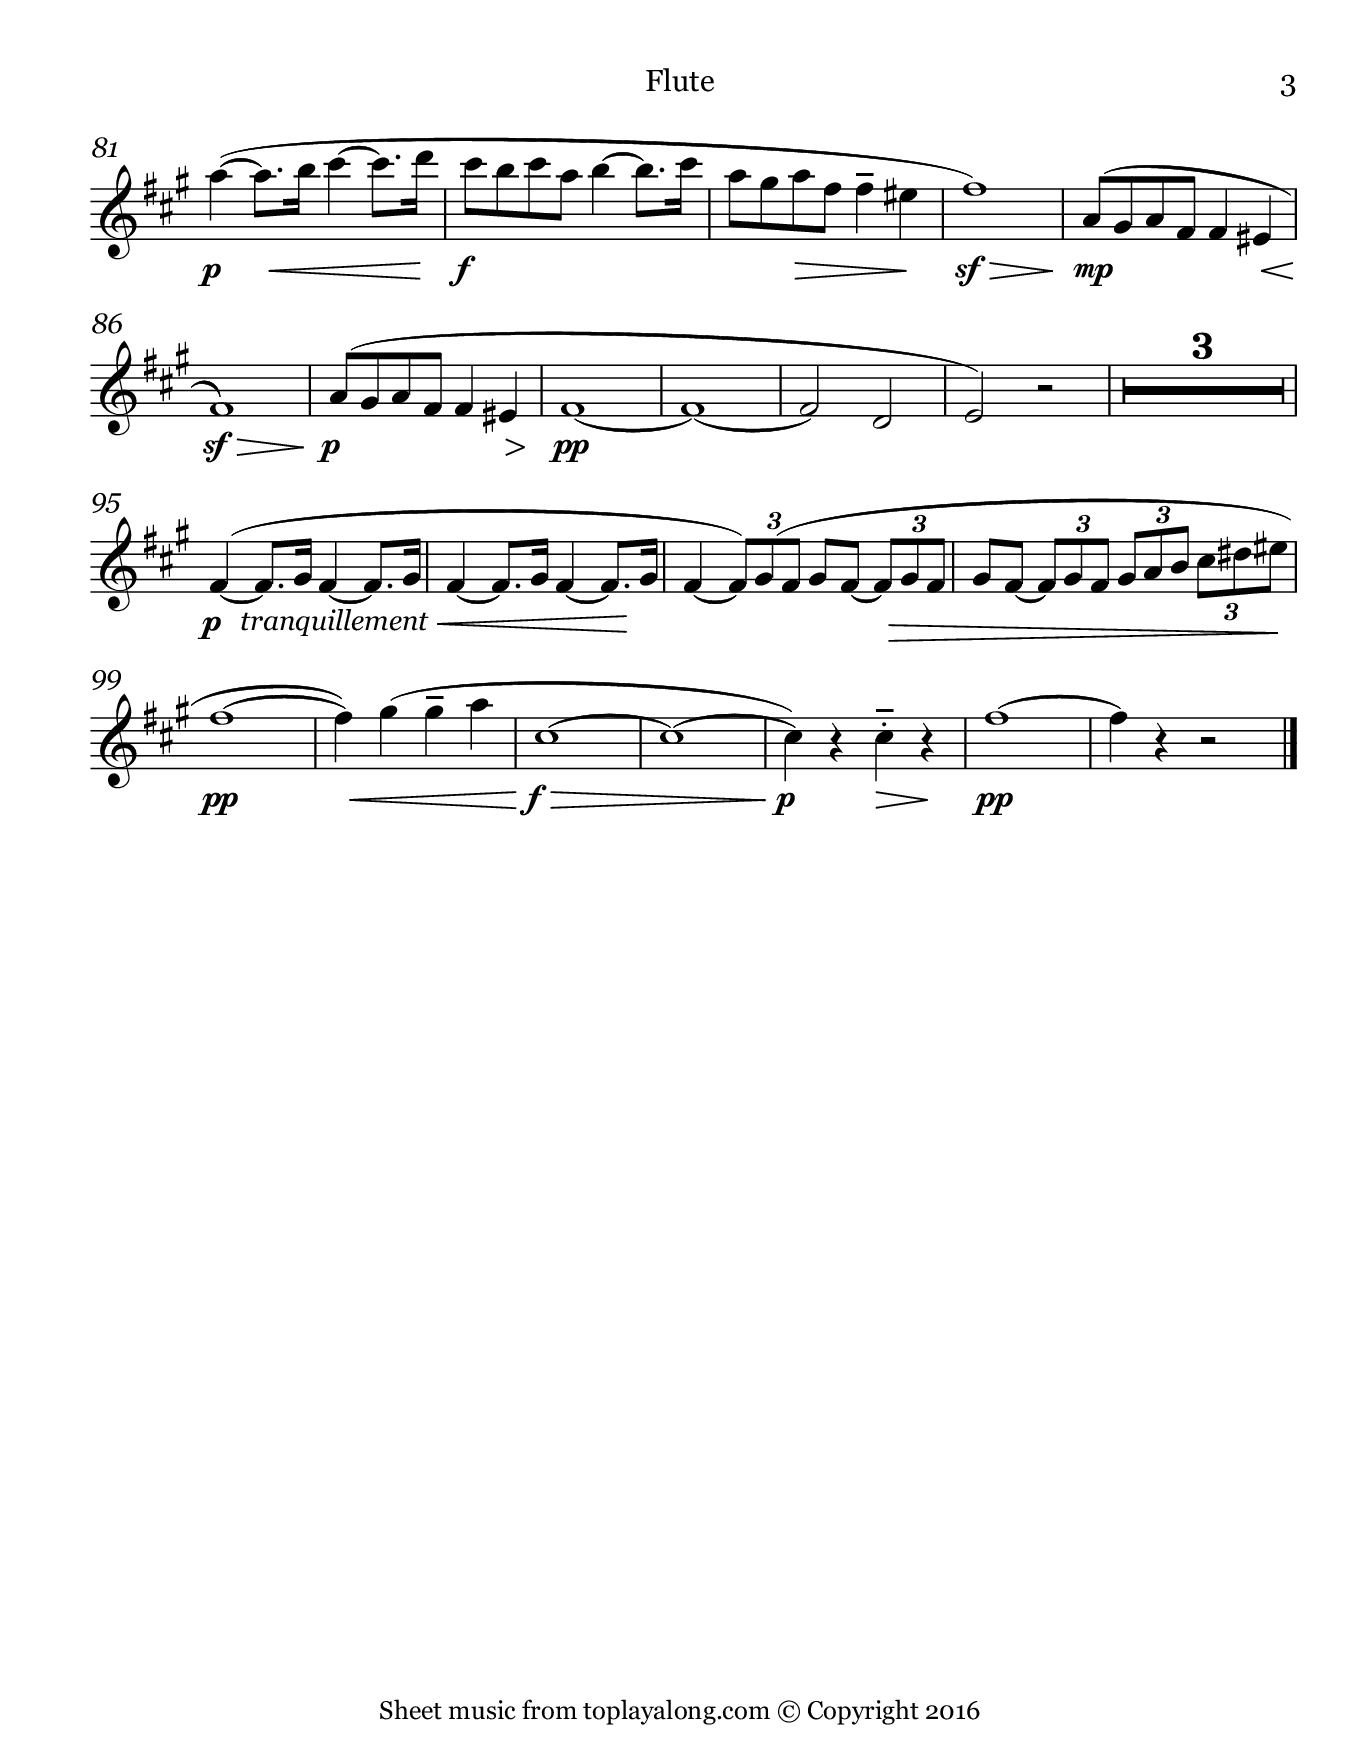 Pavane by Fauré. Sheet music for Flute, page 3.